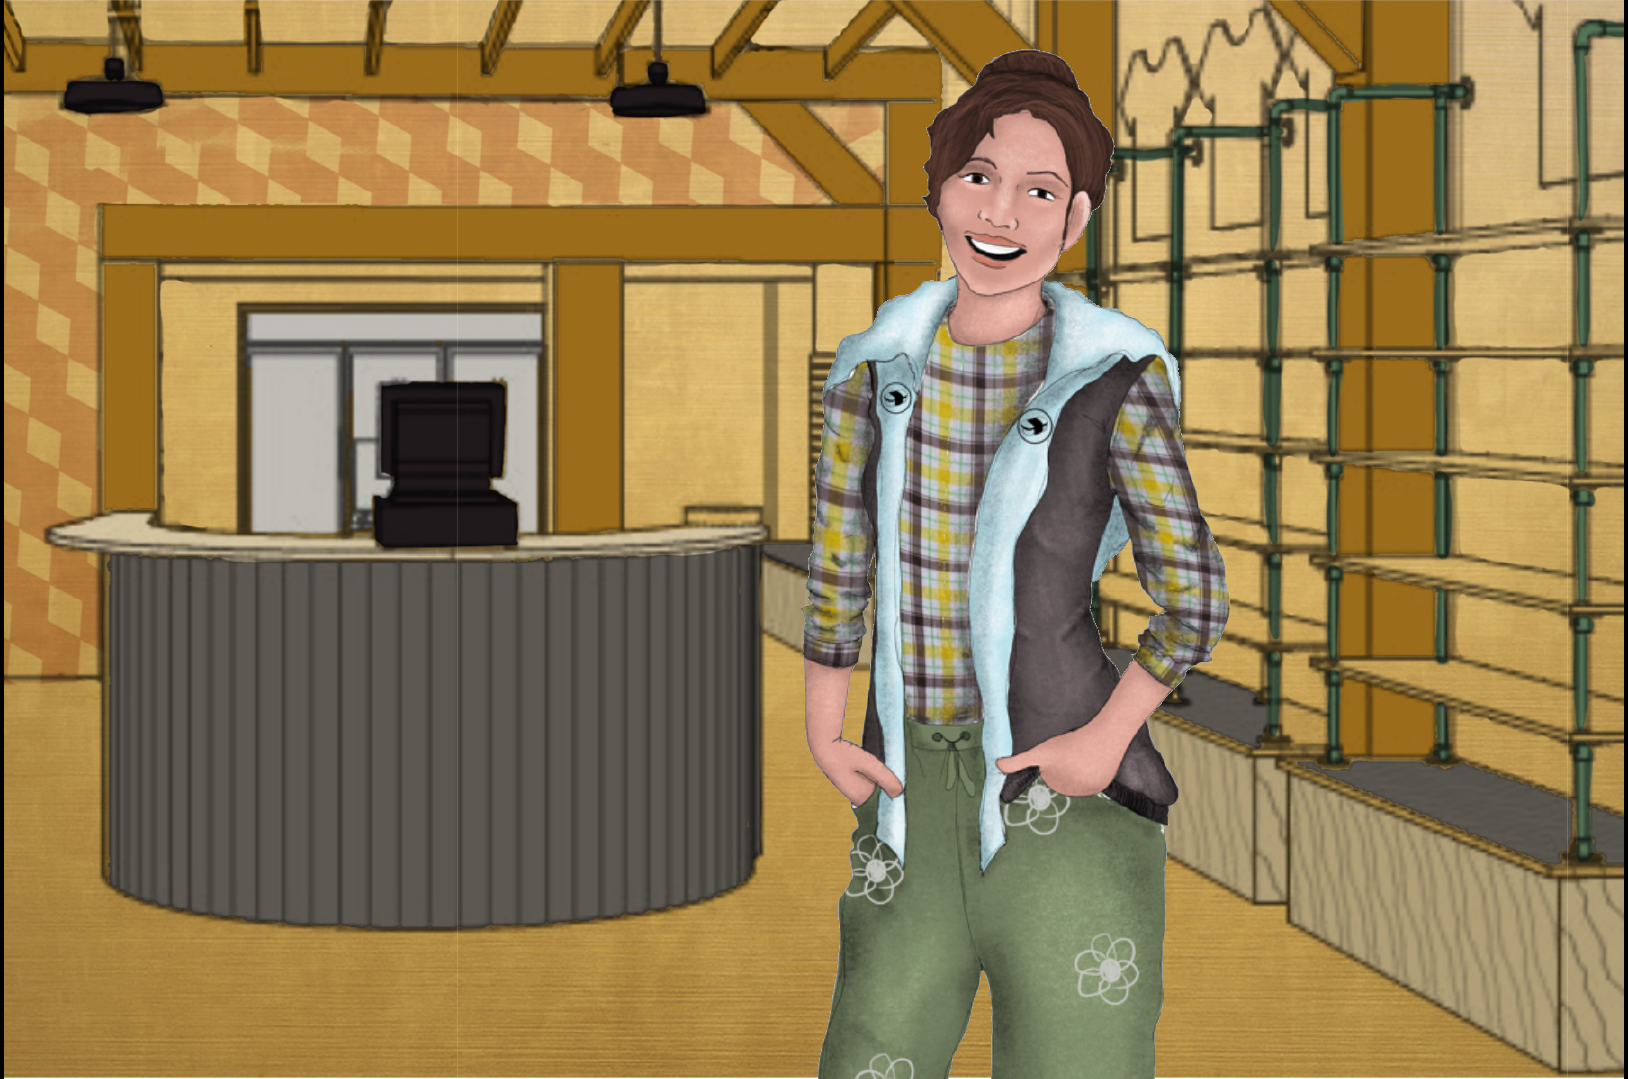 A costume rendering of an actor wearing a plaid shirt, a blue and purple vest with black crests, and green flower patterned pants